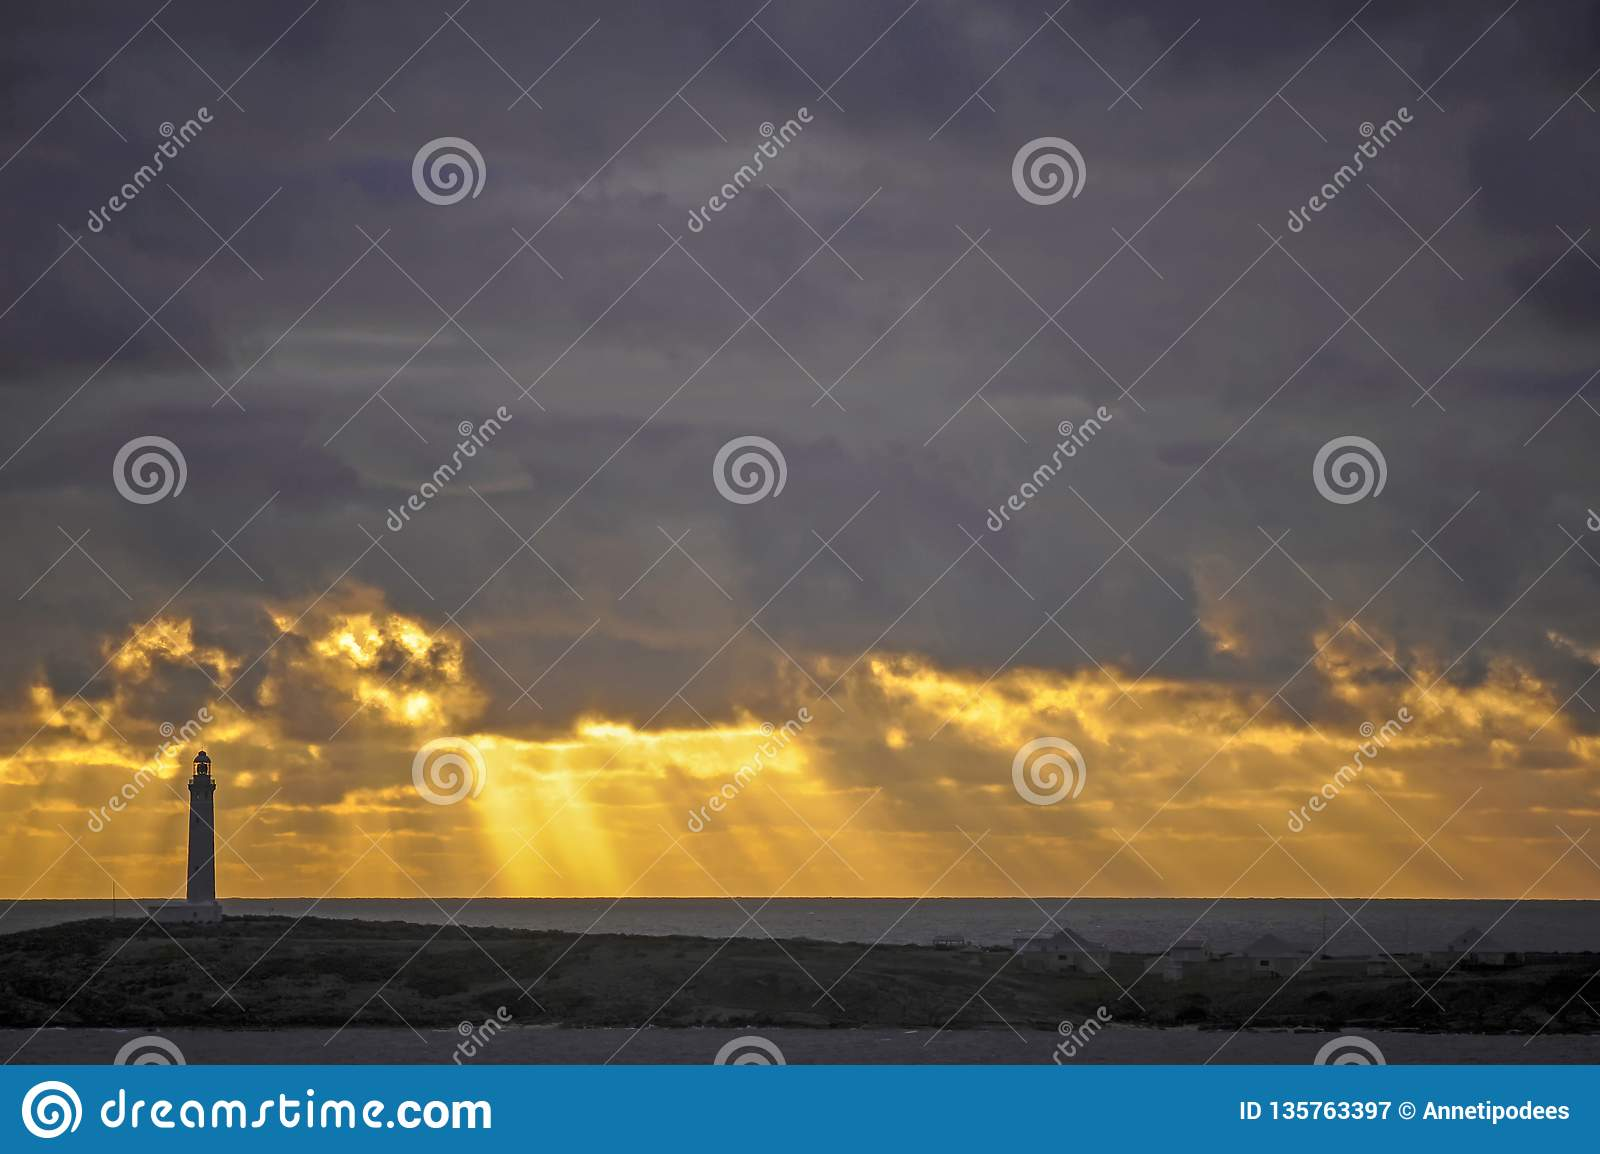 Surreal Yellow and Gray Sunset with a Light-house, Indian ocean and the great Southern Ocean.